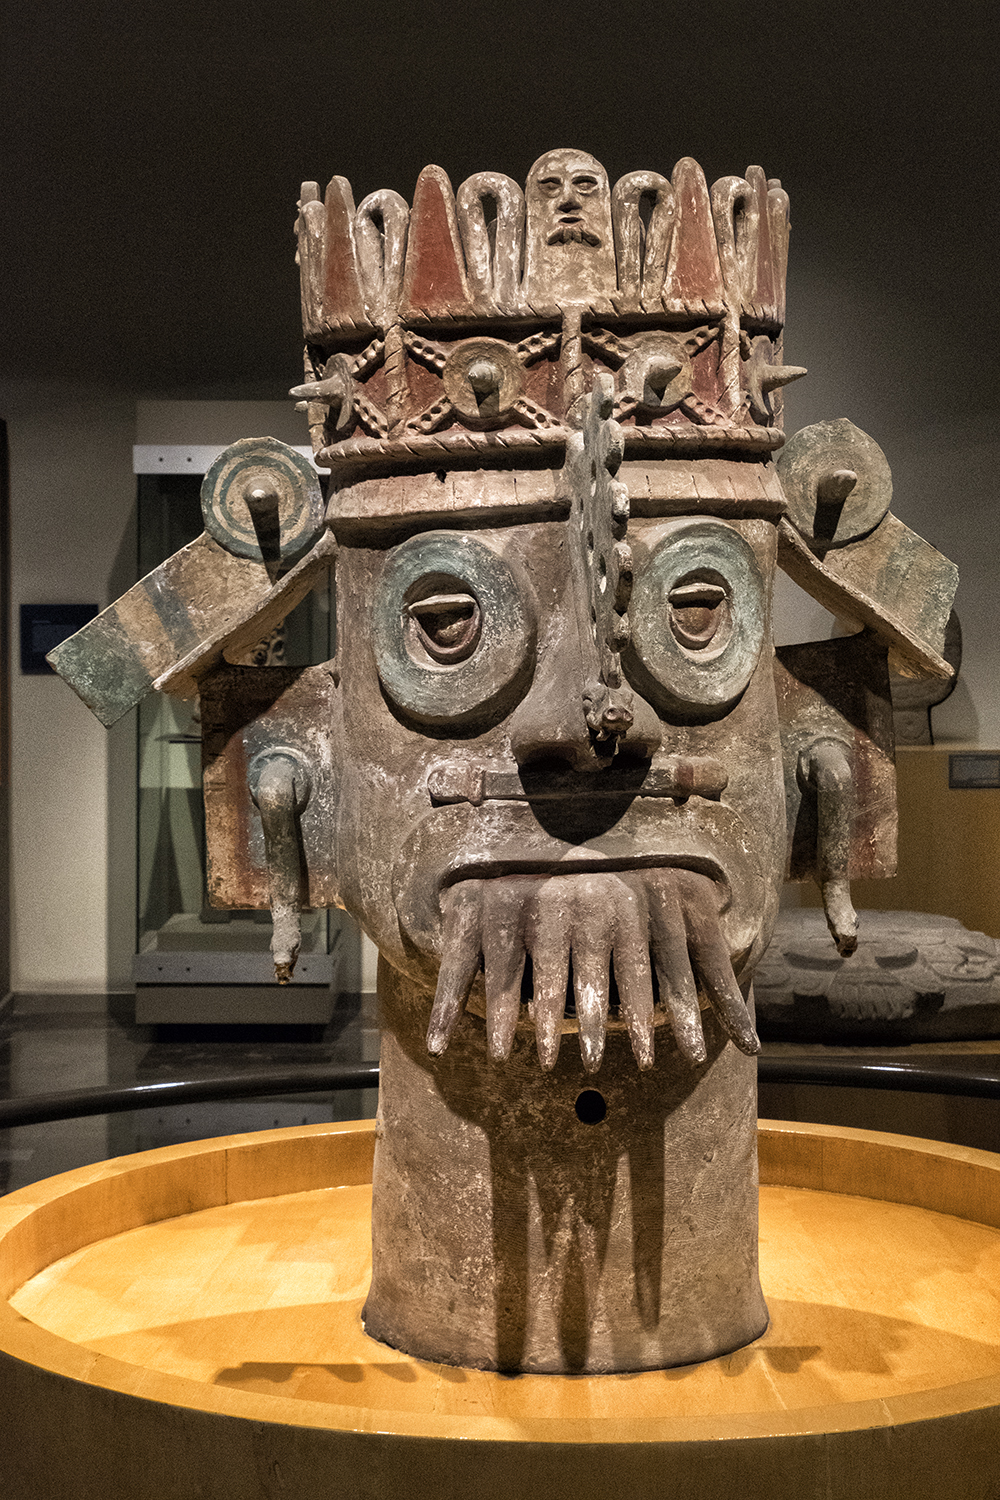 In the Museo Nacional de Archaeologia, Mexico City